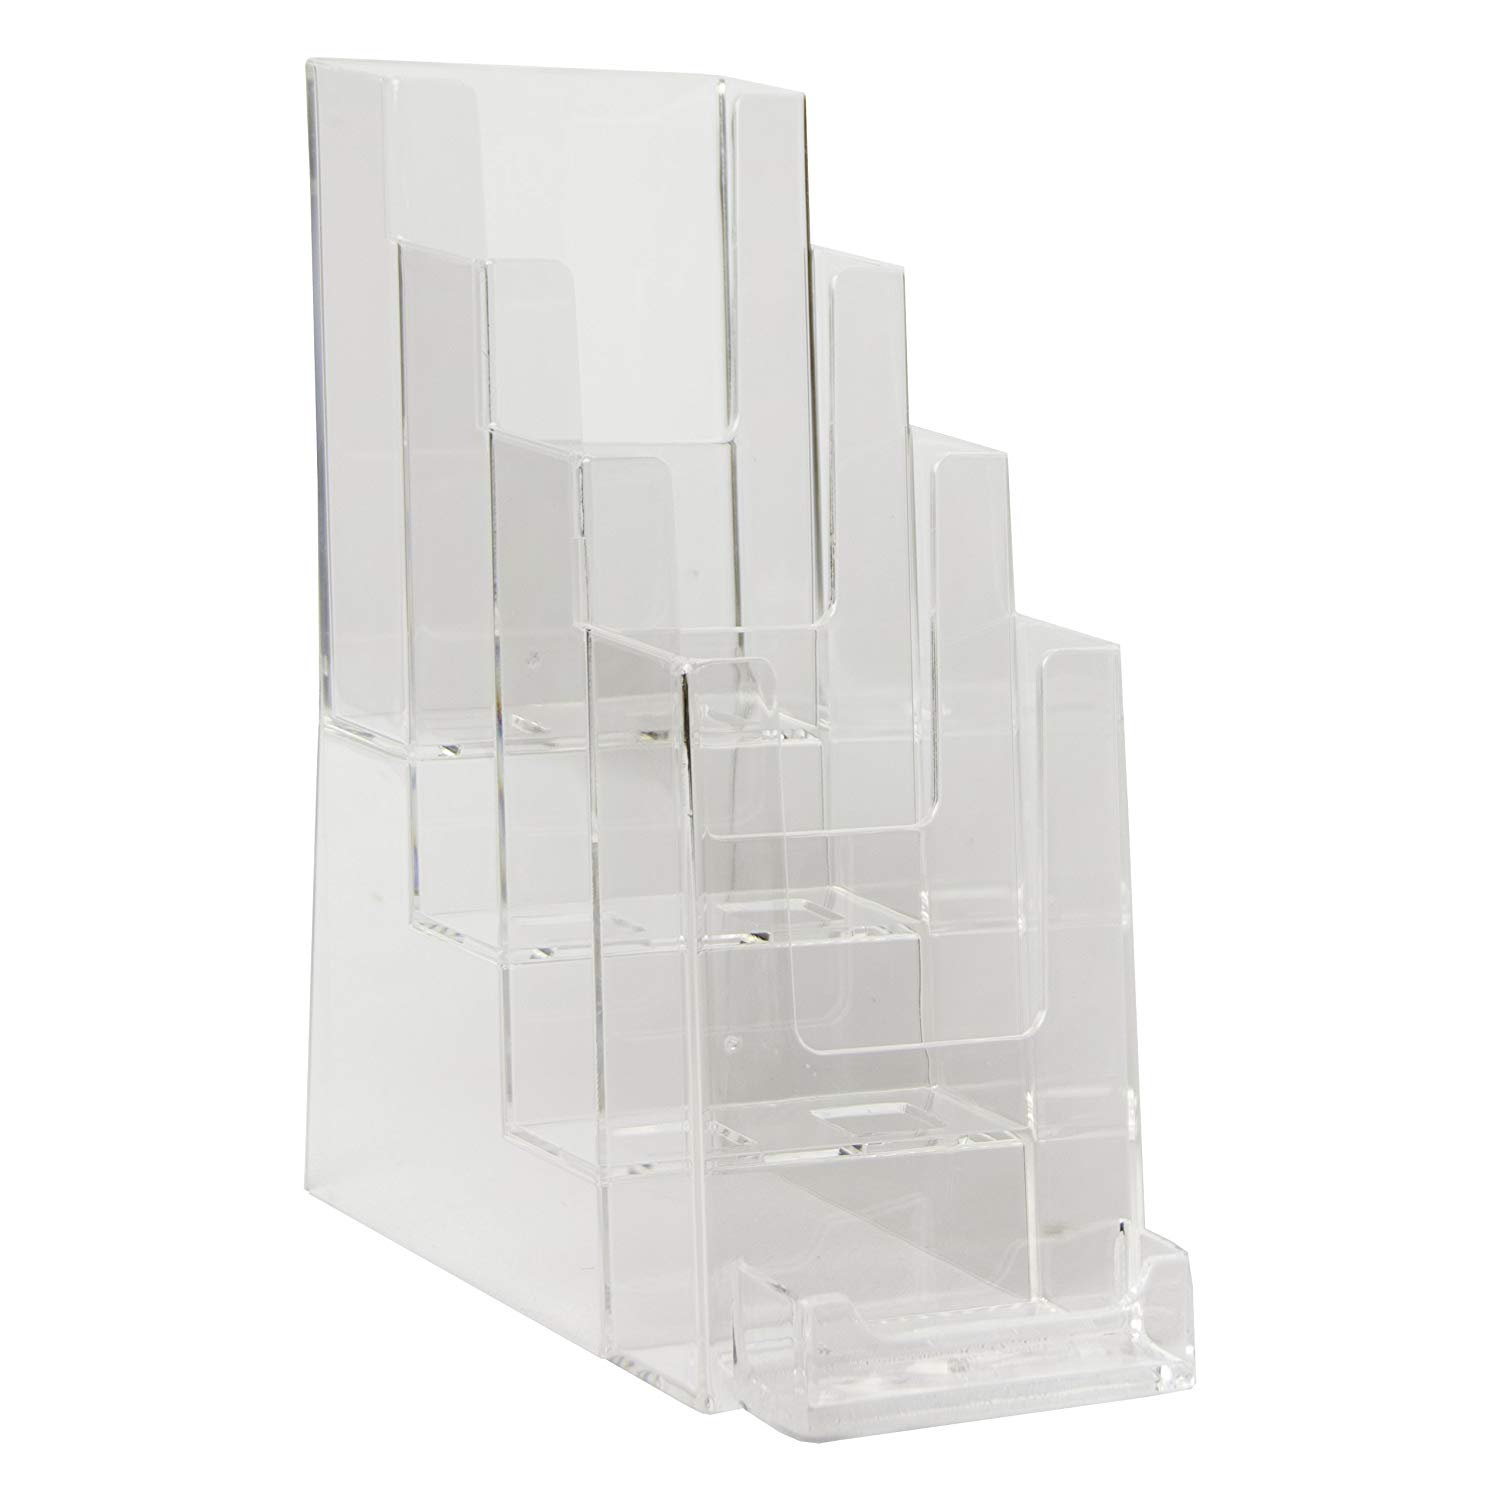 Clear-Ad - LHF-P104 - Acrylic Slant Back 4 Tier Trifold Brochure Display w/ Business Card Holder - Plastic Literature Holder for Flyers, Booklets, Bills, Mail, Letters, Cards, Pamphlets, Maps (2-Pack)